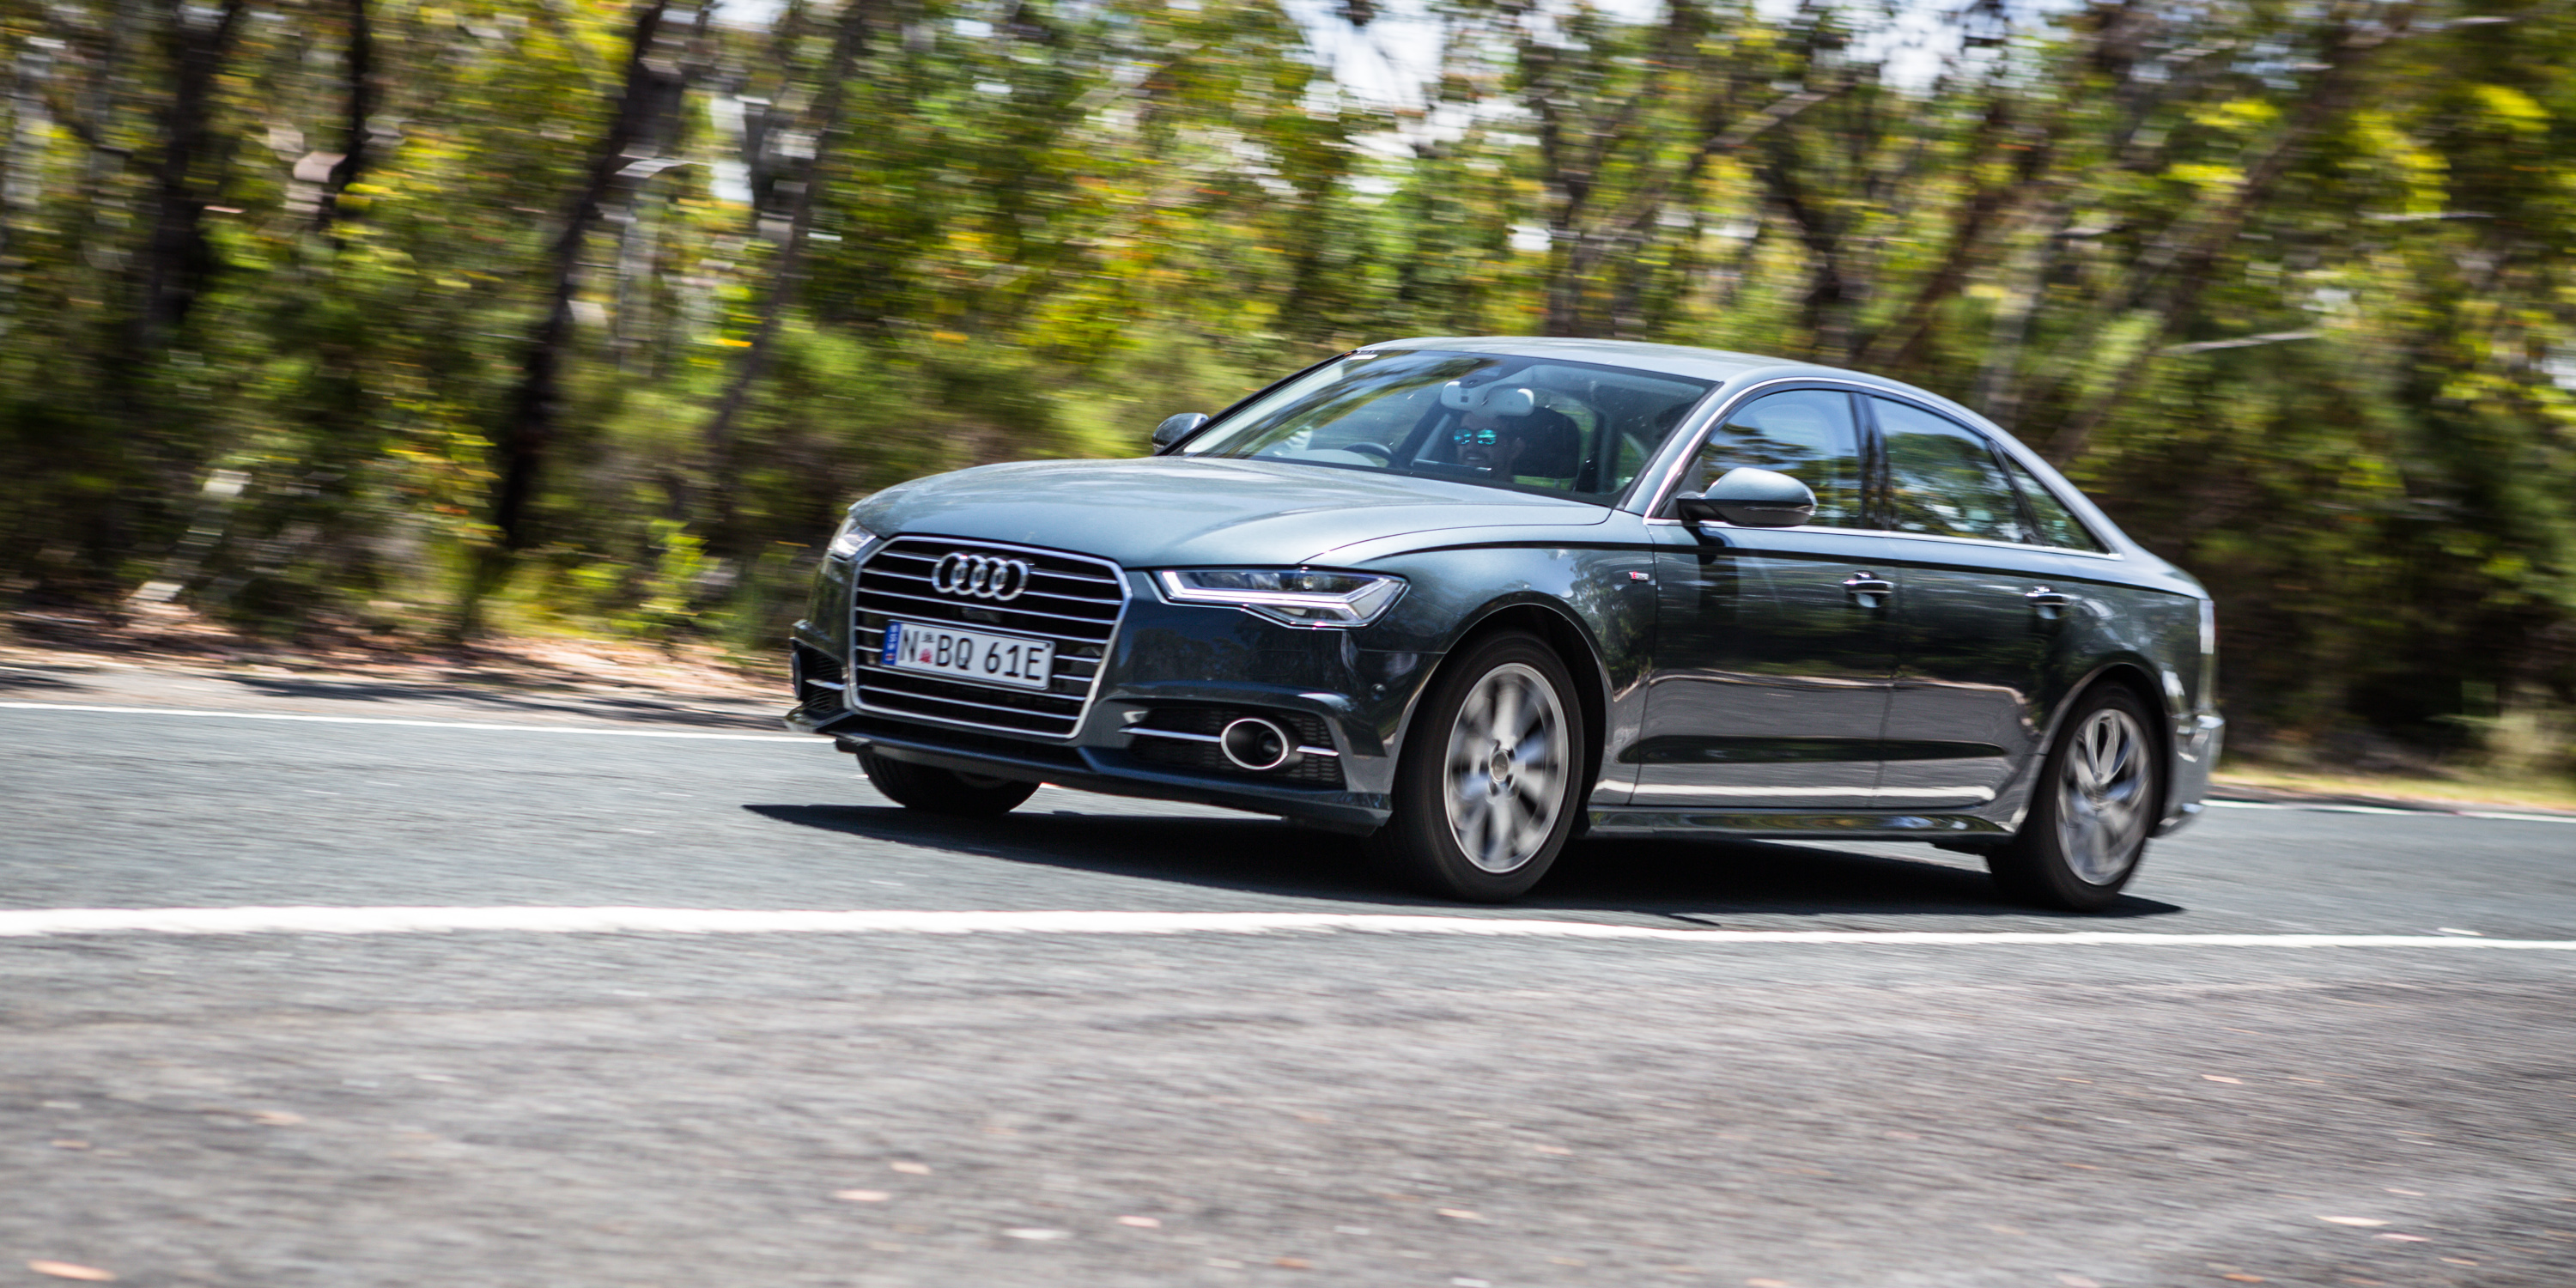 audi confirms new a6 a7 a8 q3 and a1 all for 2017 photos 1 of 3. Black Bedroom Furniture Sets. Home Design Ideas